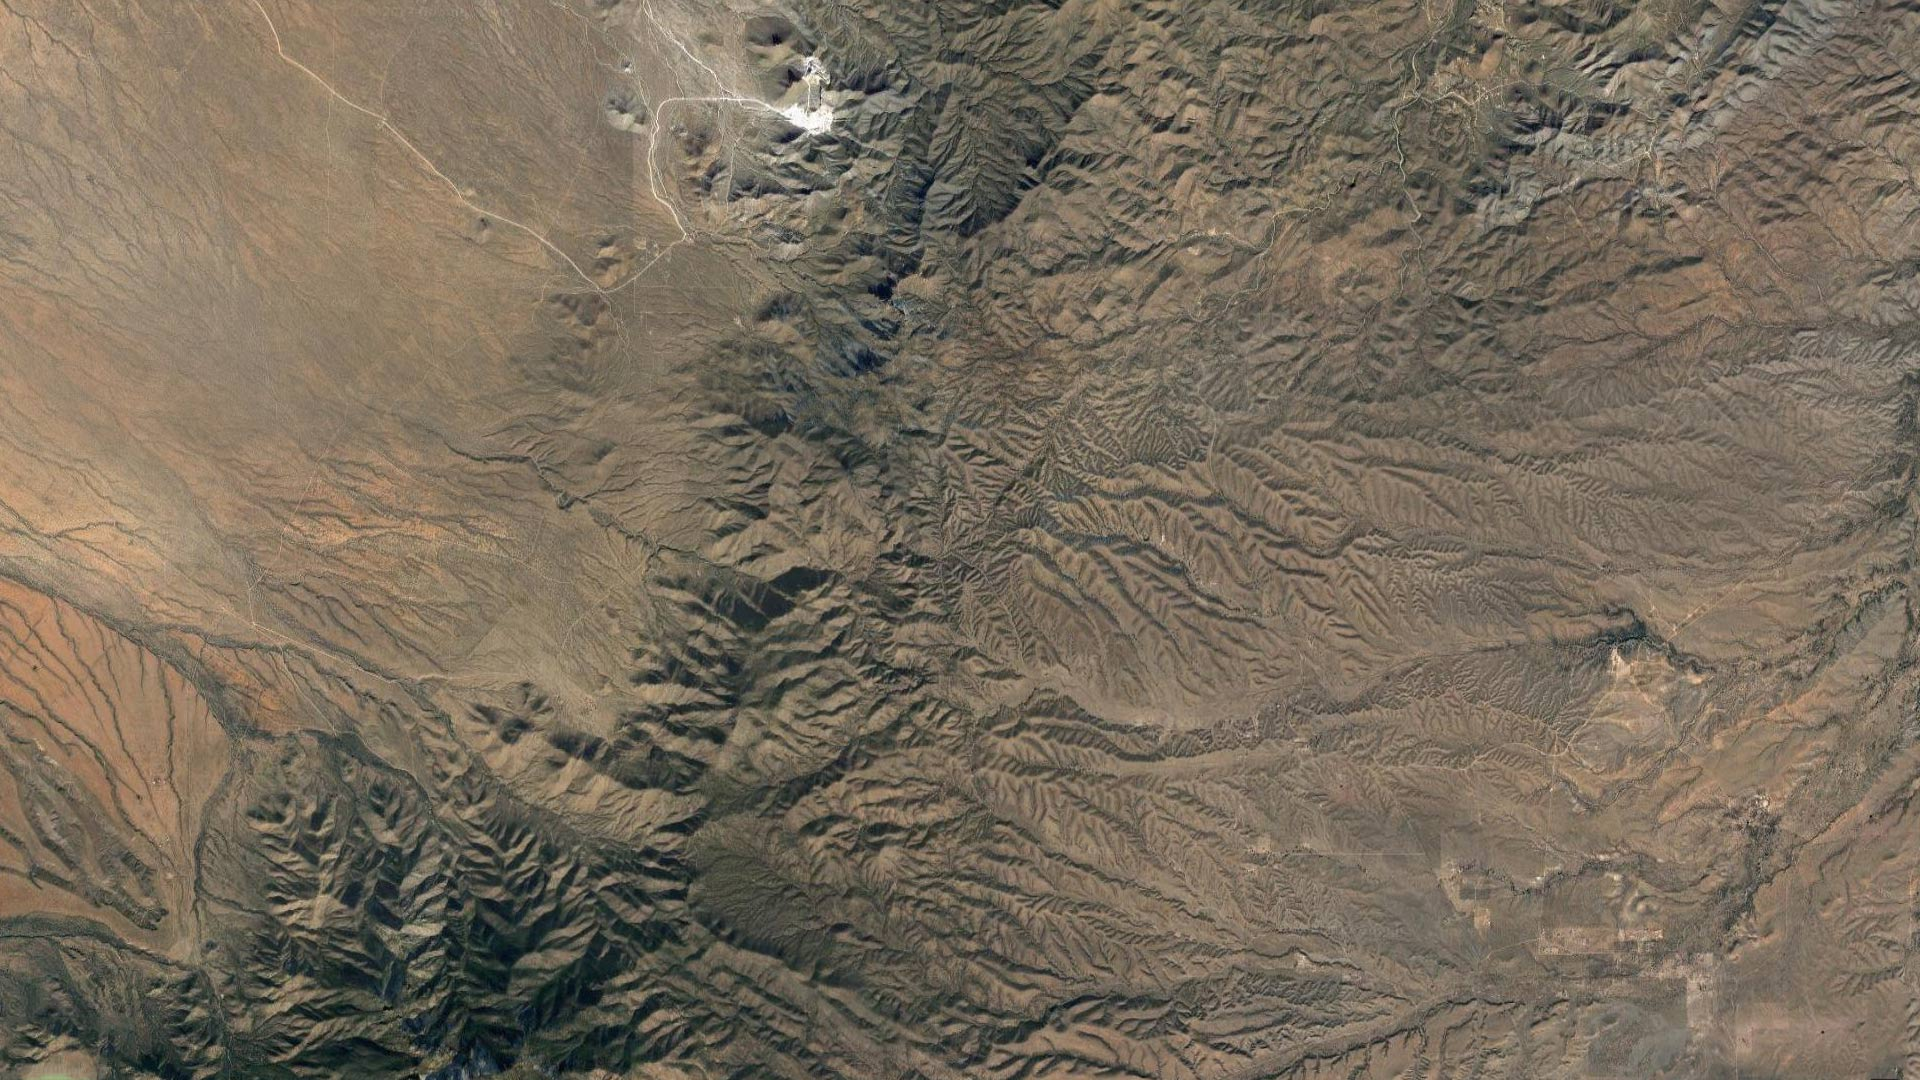 A view above the Santa Rita Mountains from satellite.